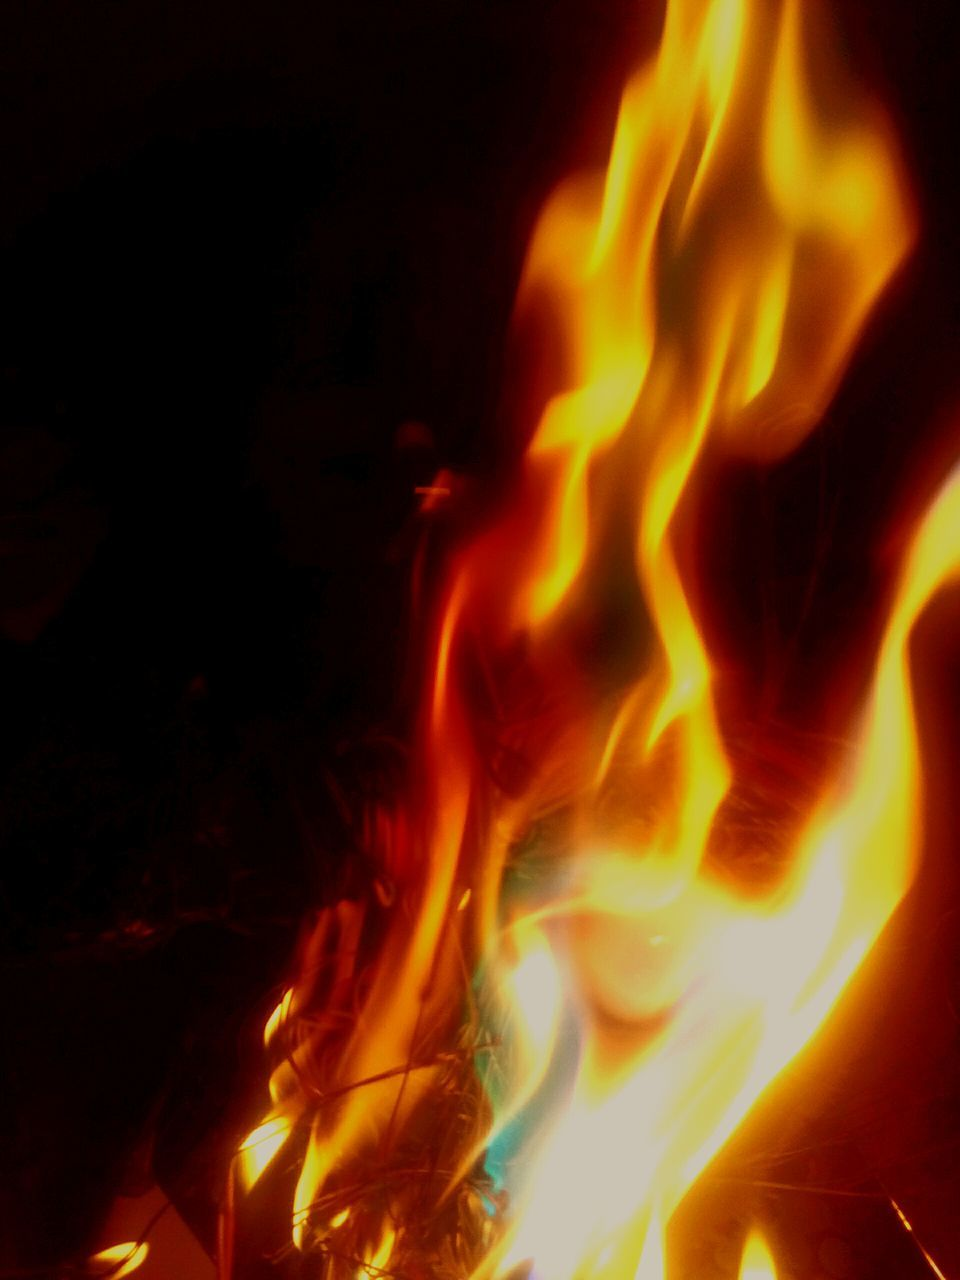 burning, flame, heat - temperature, night, no people, motion, close-up, yellow, bonfire, outdoors, nature